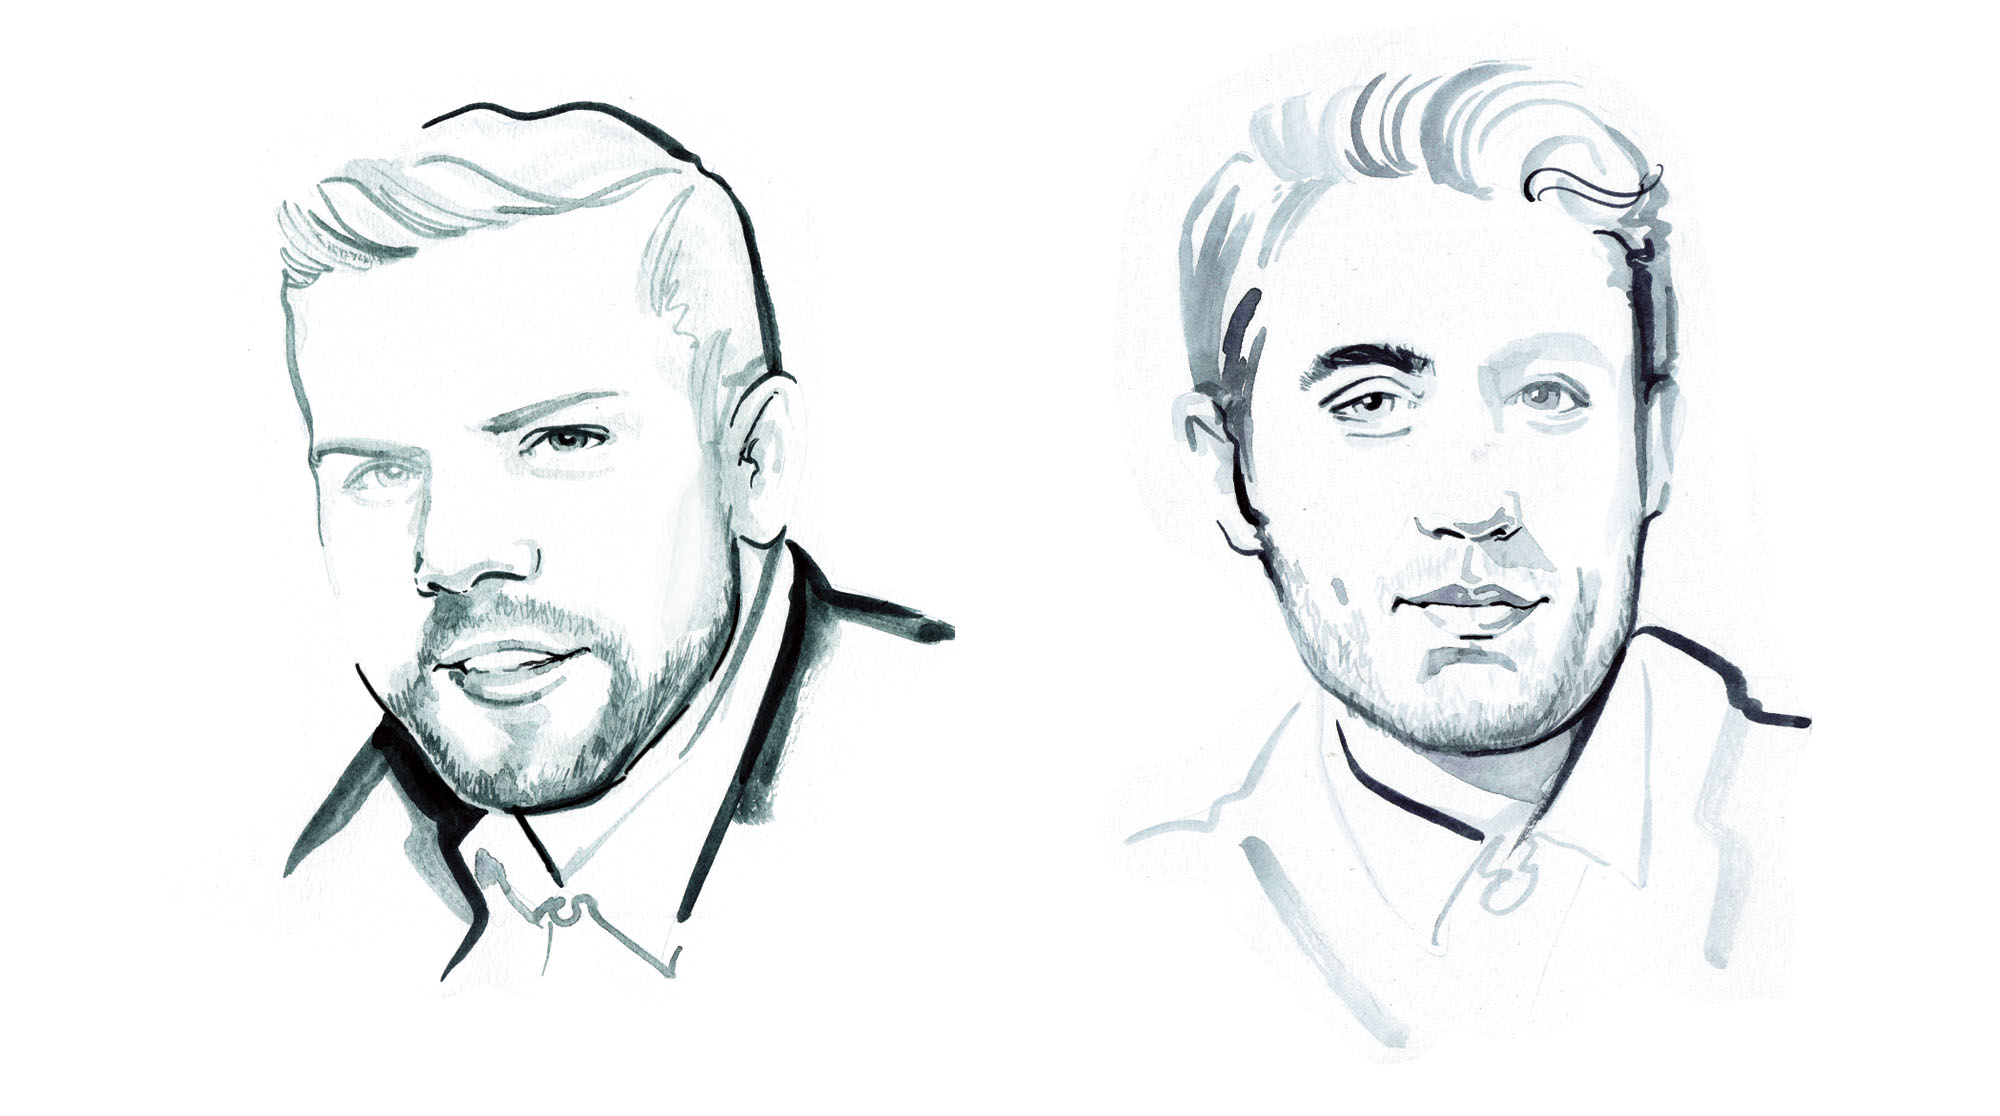 Portrait illustrations for Links of London PR dinner.